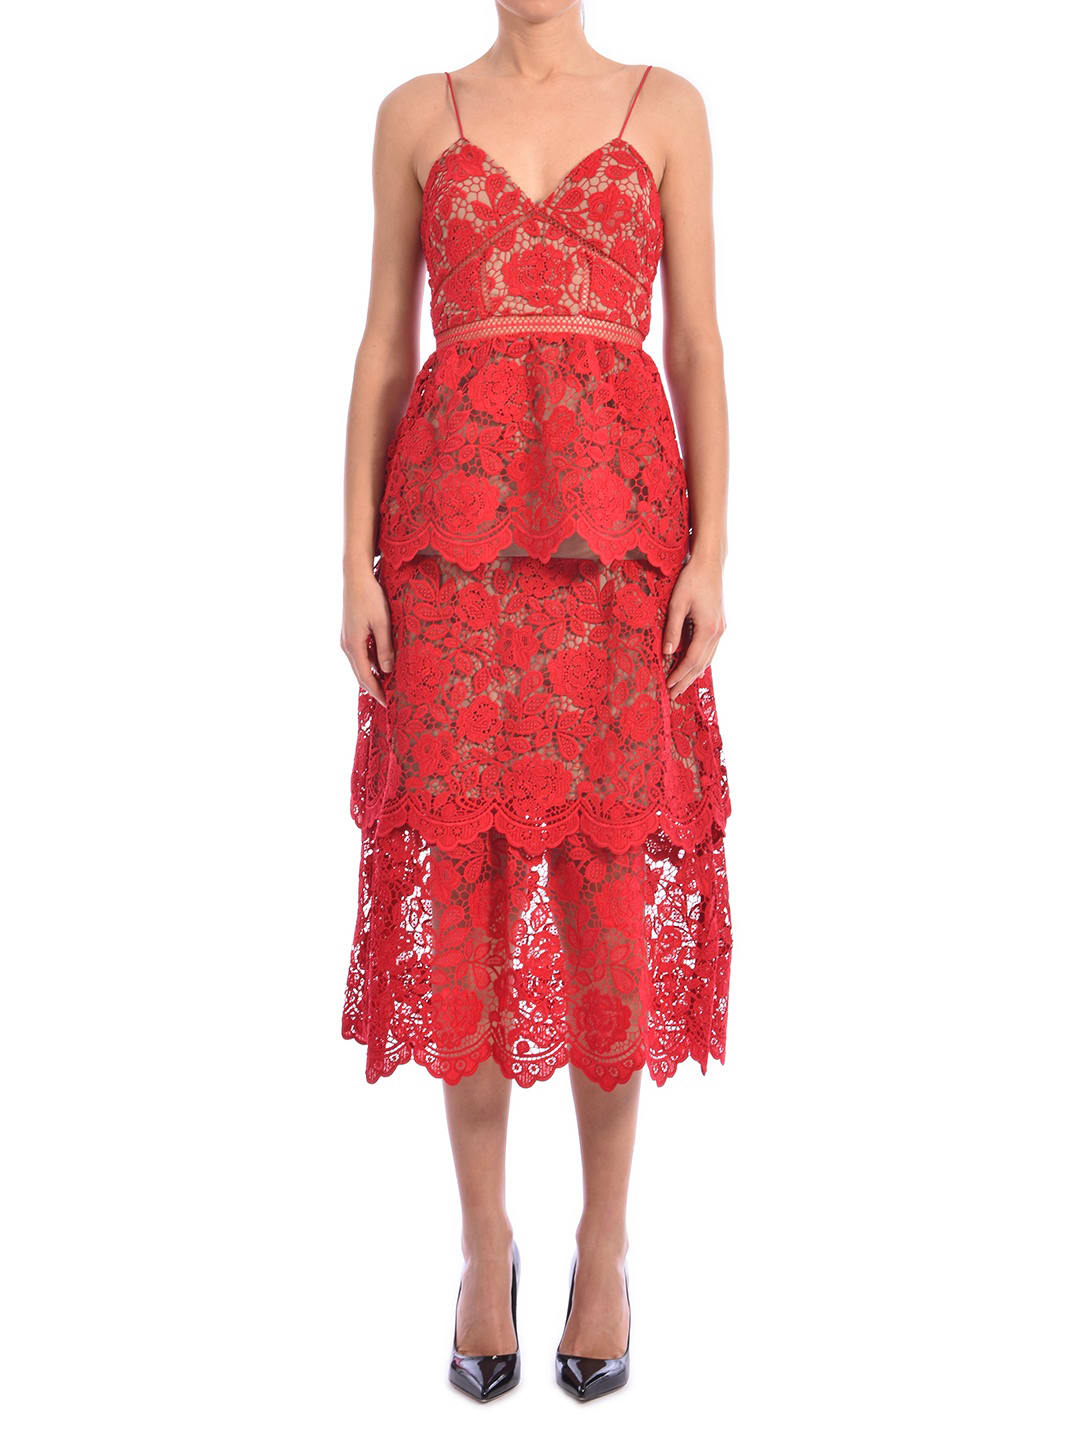 Buy self-portrait Lace Dress Red online, shop self-portrait with free shipping